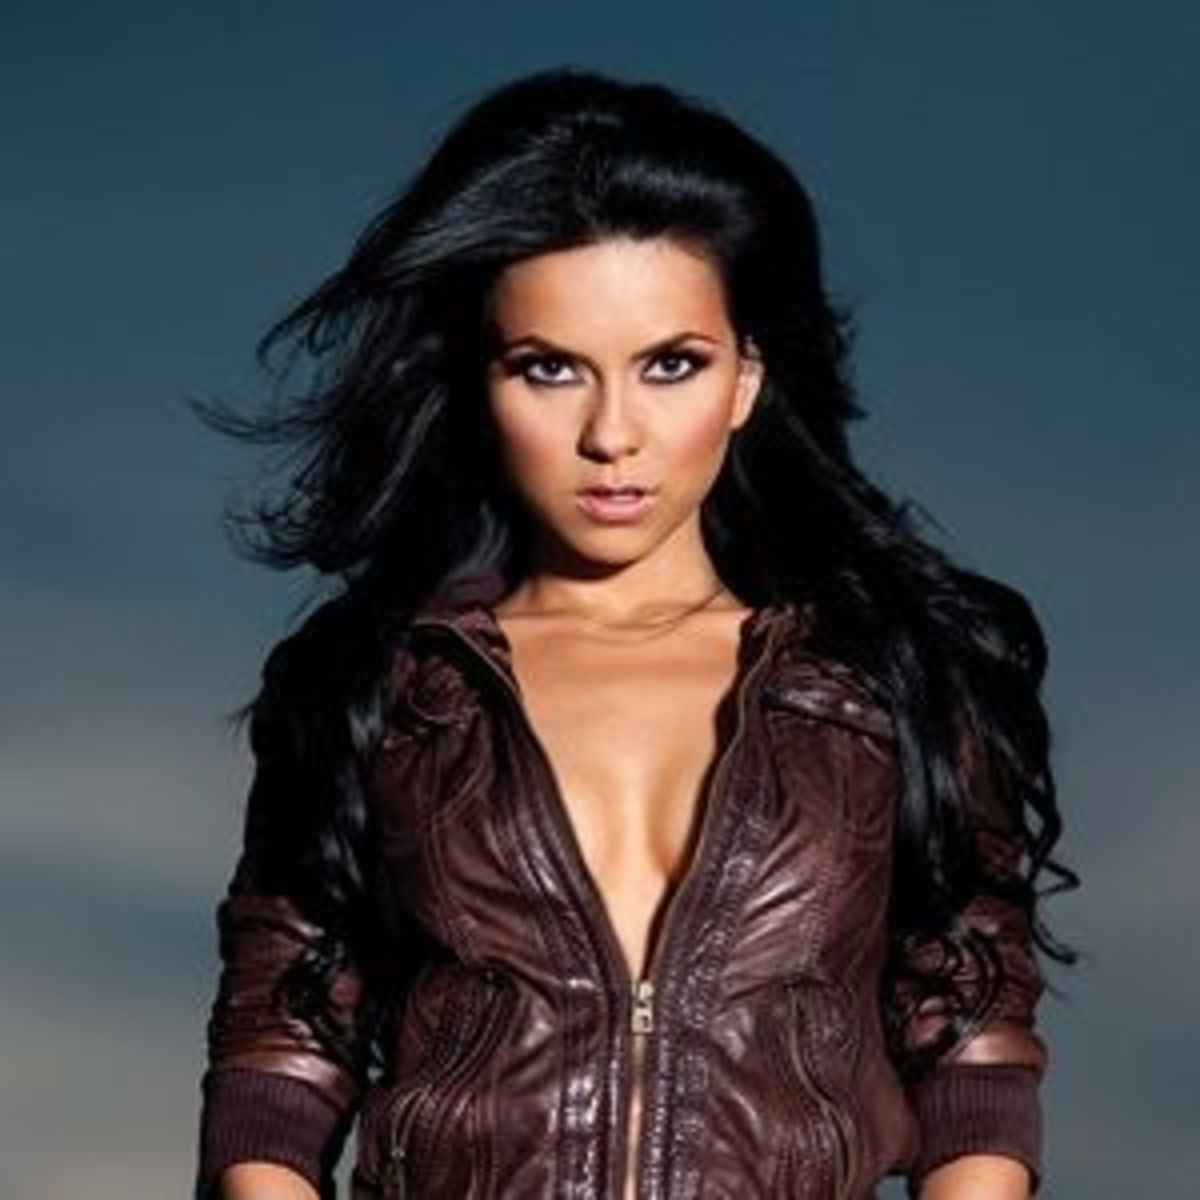 Top 5 Hottest Romanian Singers - The Sexiest Female ...